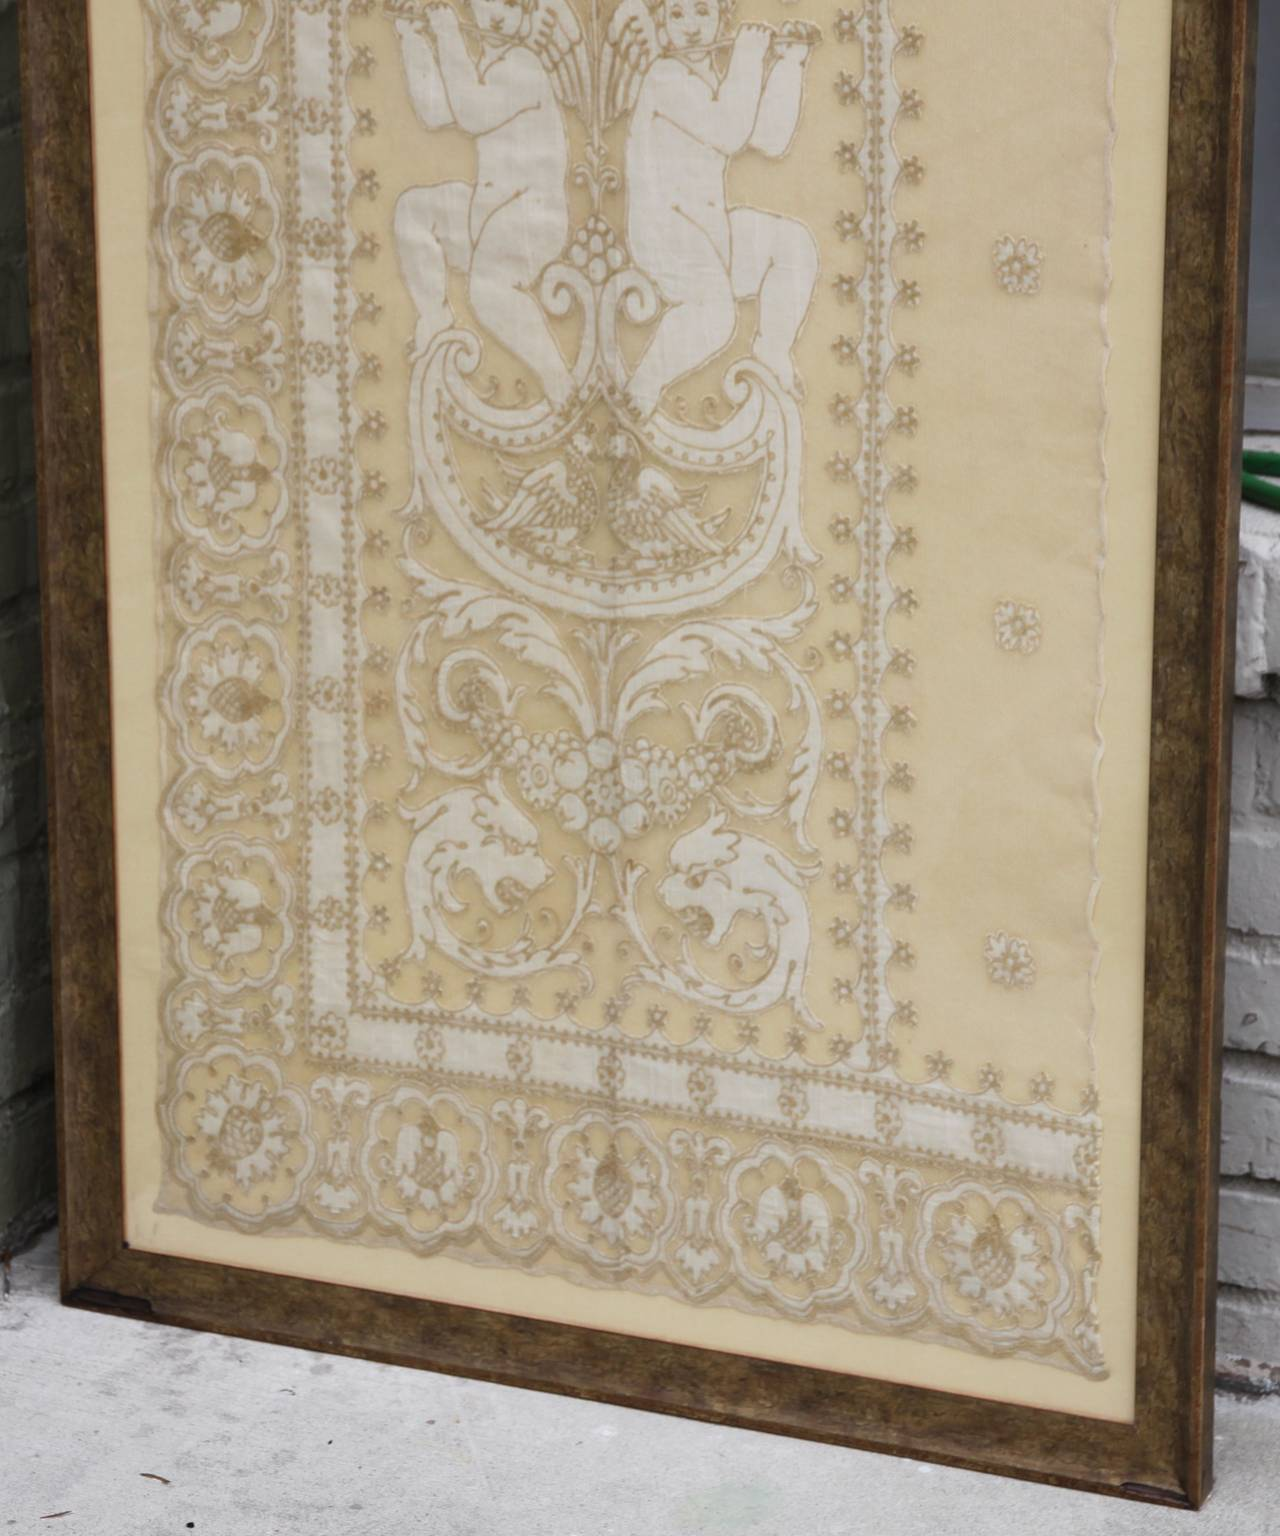 19th Century Framed Lace Panel with Cherubs | Melissa Levinson Antiques